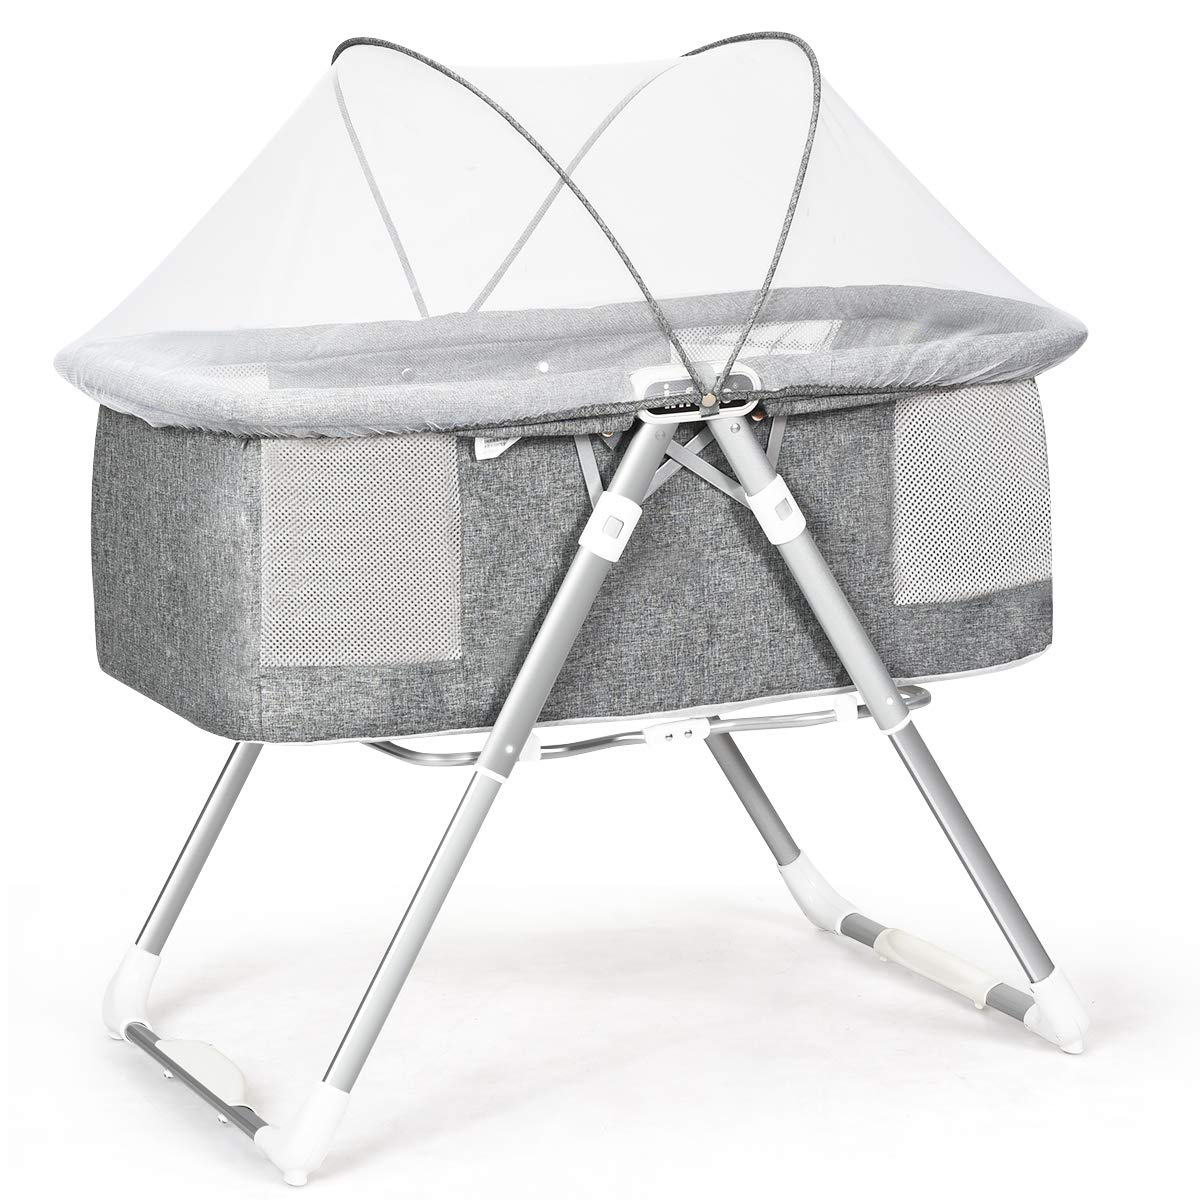 INFANS 2 in 1 Rocking Bassinet for Newborn Baby, One-Second Fold Travel Crib with Detachable & Thicken Mattress, Height Adjustable Legs, Mosquito Net, Cradle with Stationary & Rock Mode (Grey) by INFANS